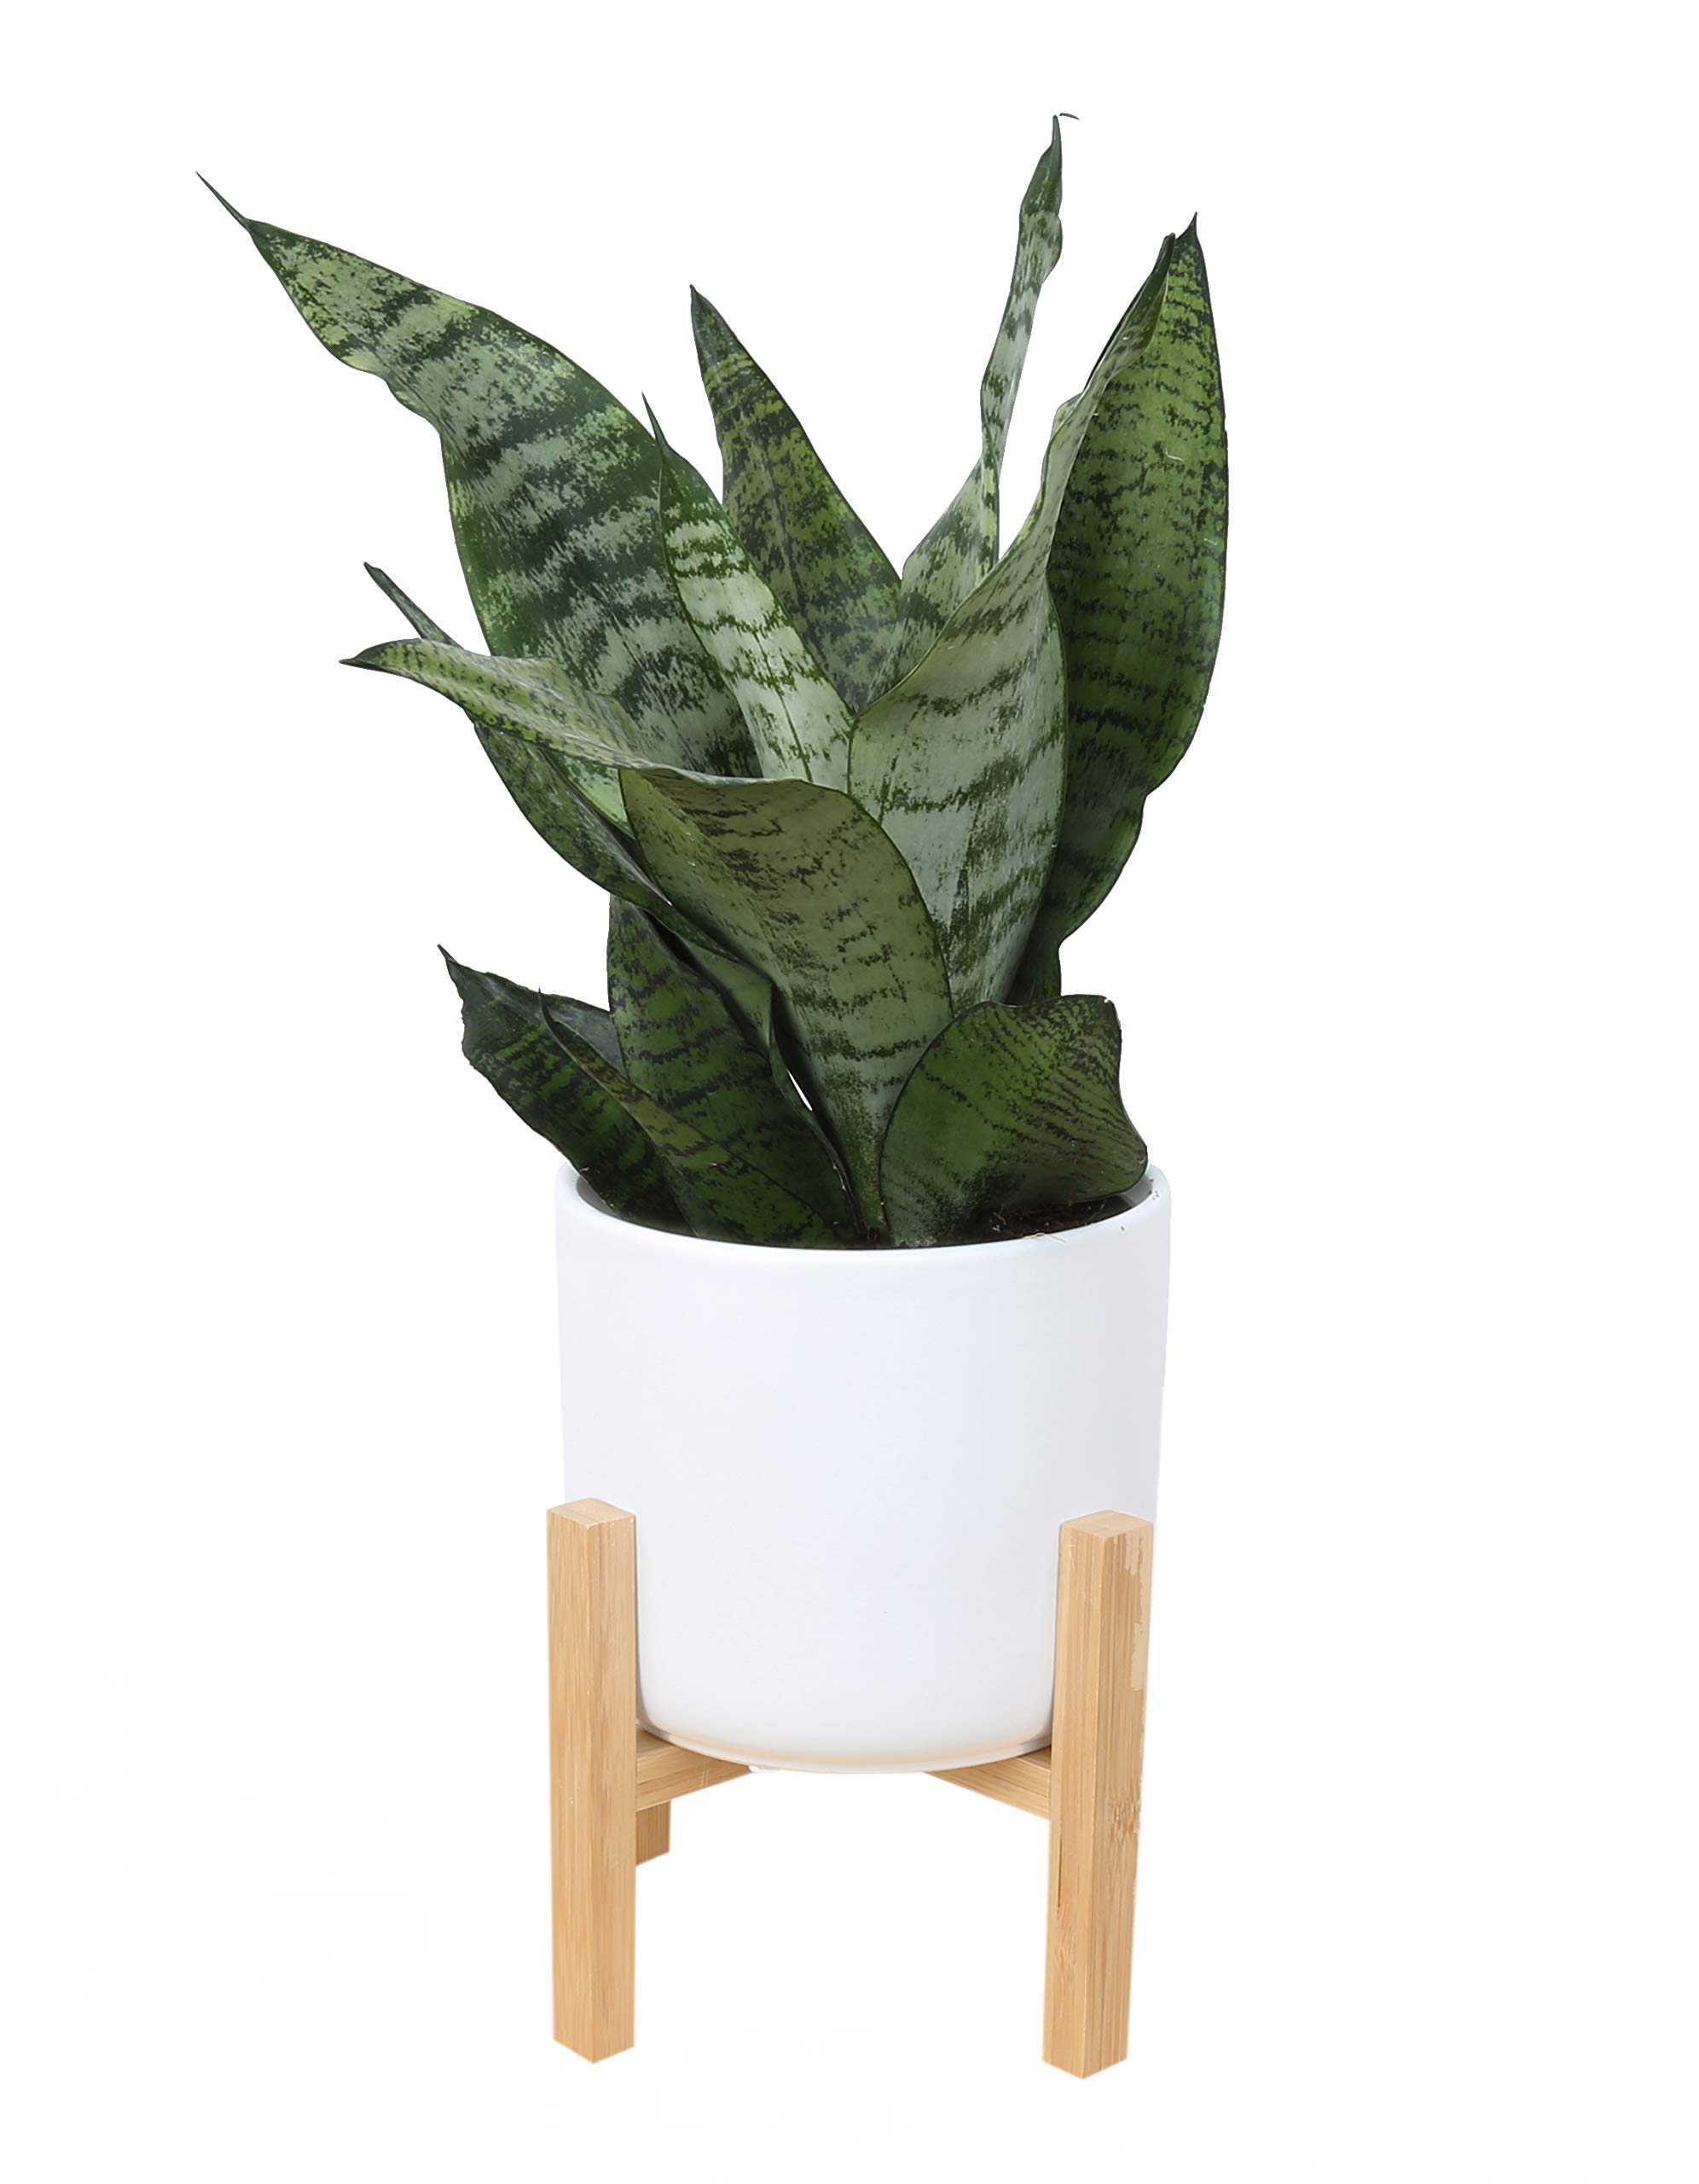 Costa Farms Snake Plant, Sansevieria, with 6.5-inch Wide Mid-Century Modern Planter and Plant Stand Set, White, Fits on Floor/Tabletops